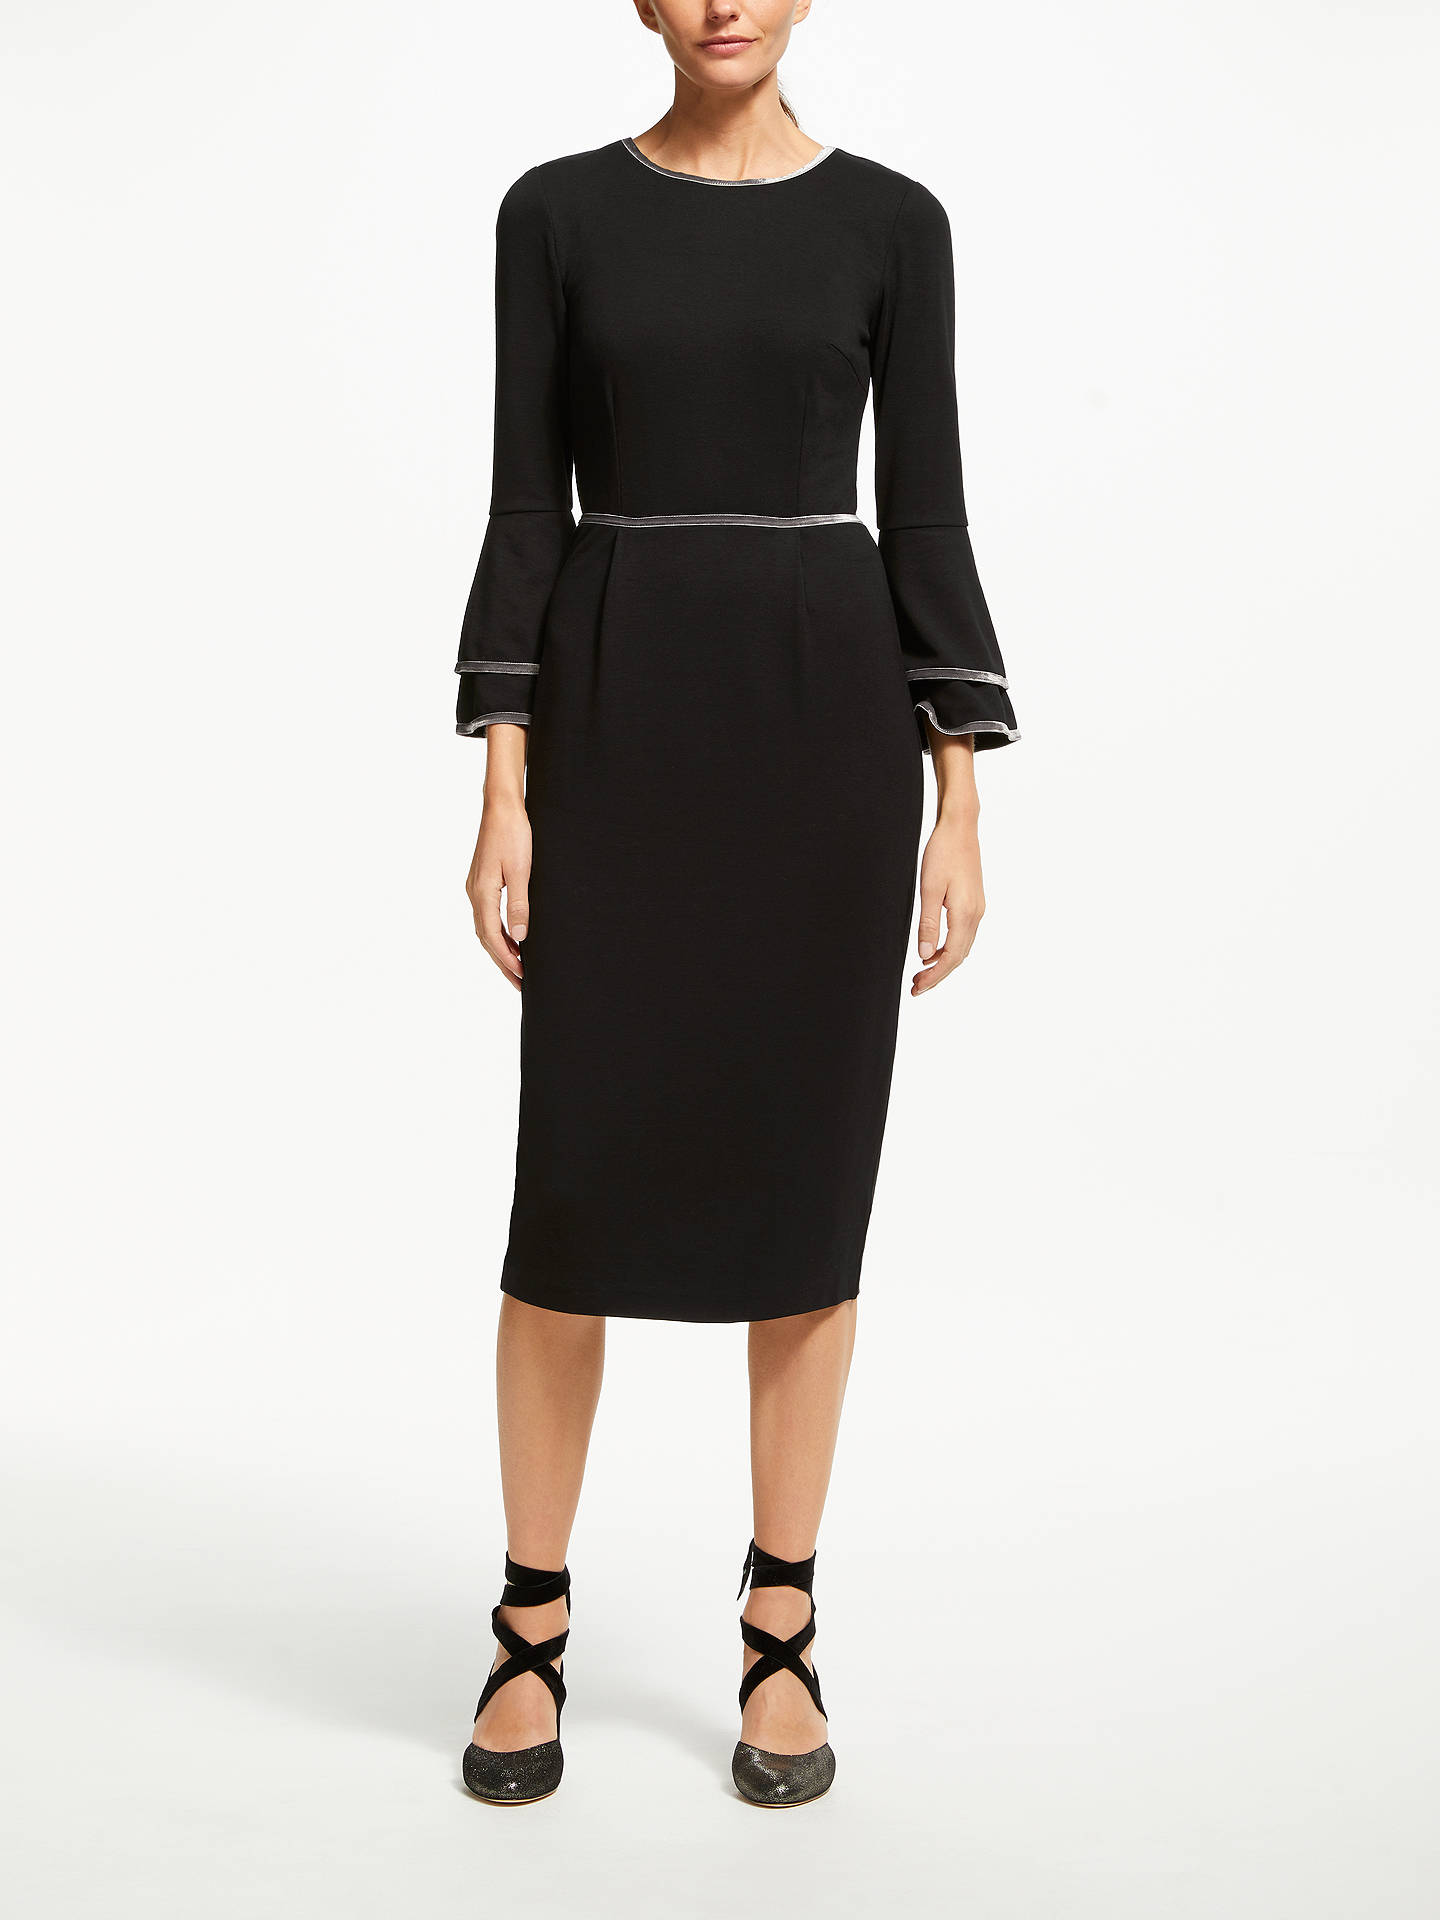 58bca66558e Boden Cora Jersey Dress at John Lewis   Partners